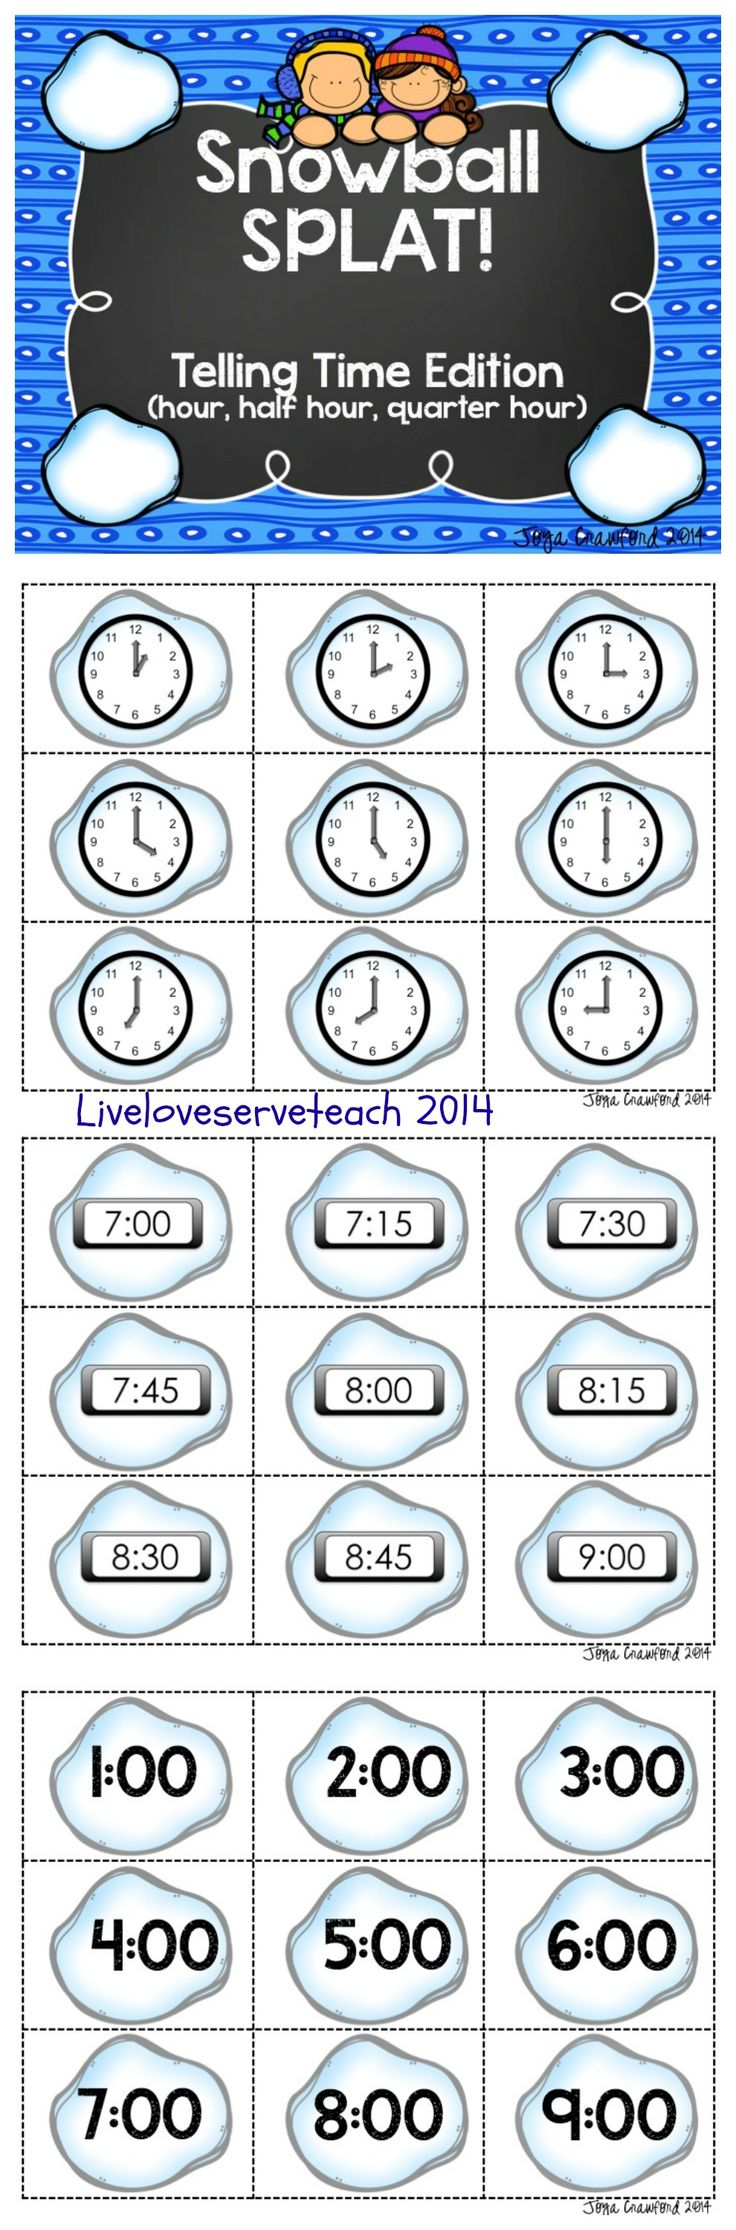 Fun and engaging game to practice time to the hour, half hour, and quarter hour. Includes analog and digital clocks.